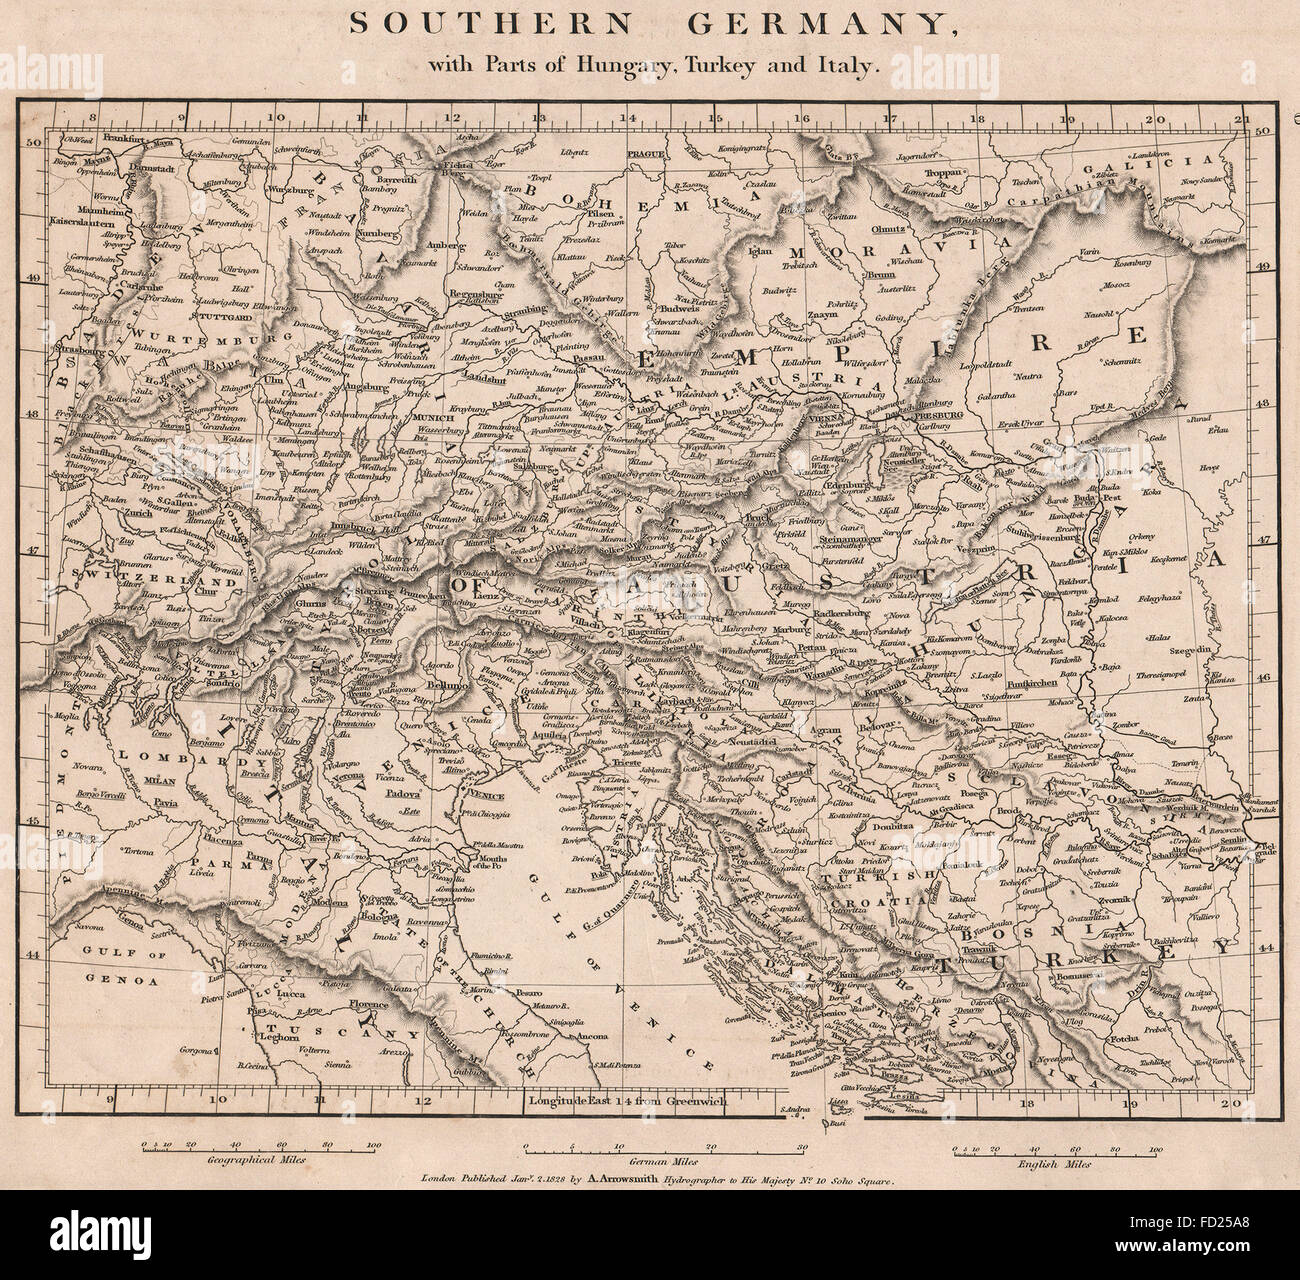 Cent Europe Southern Germany Parts Hungary Turkey Italy – Southern Germany Map